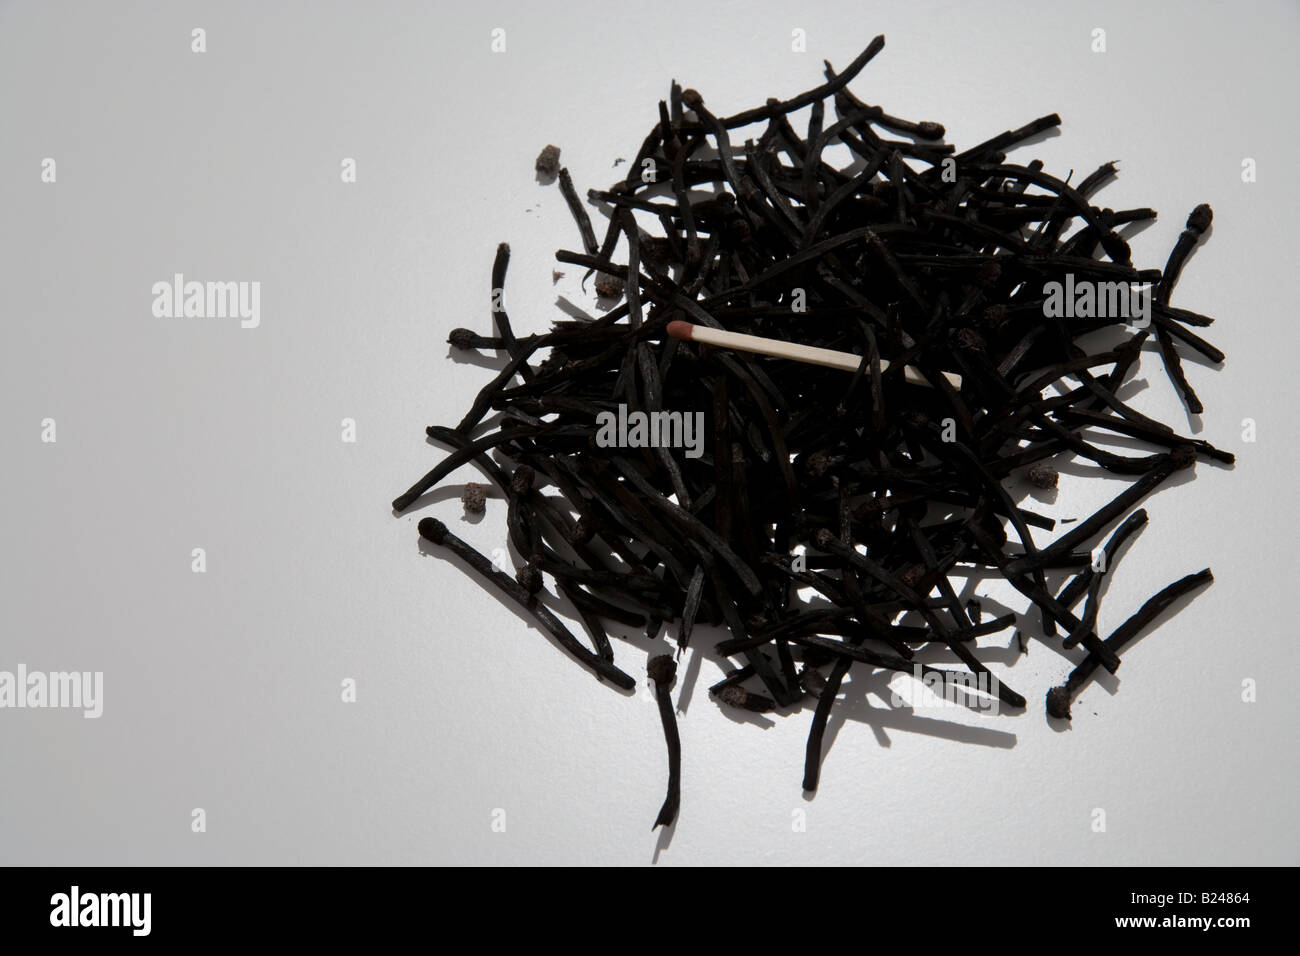 New match on a stack of burnt matches - Stock Image